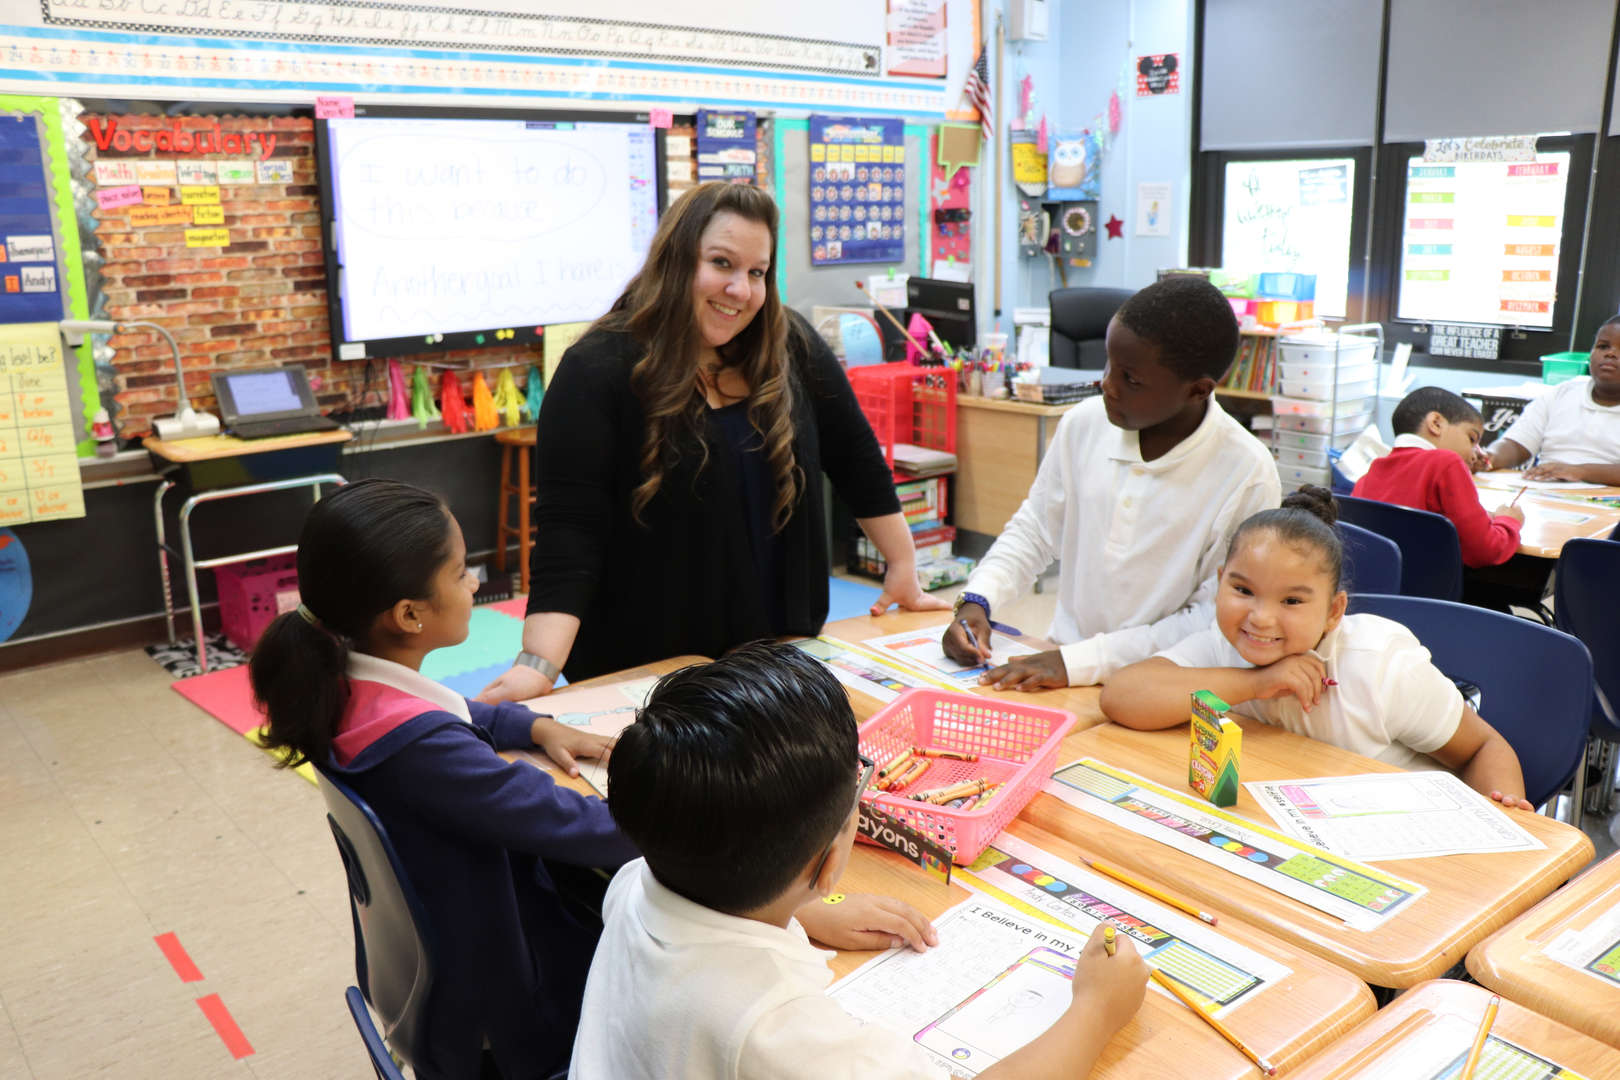 Mrs. McGuire teaching her students.